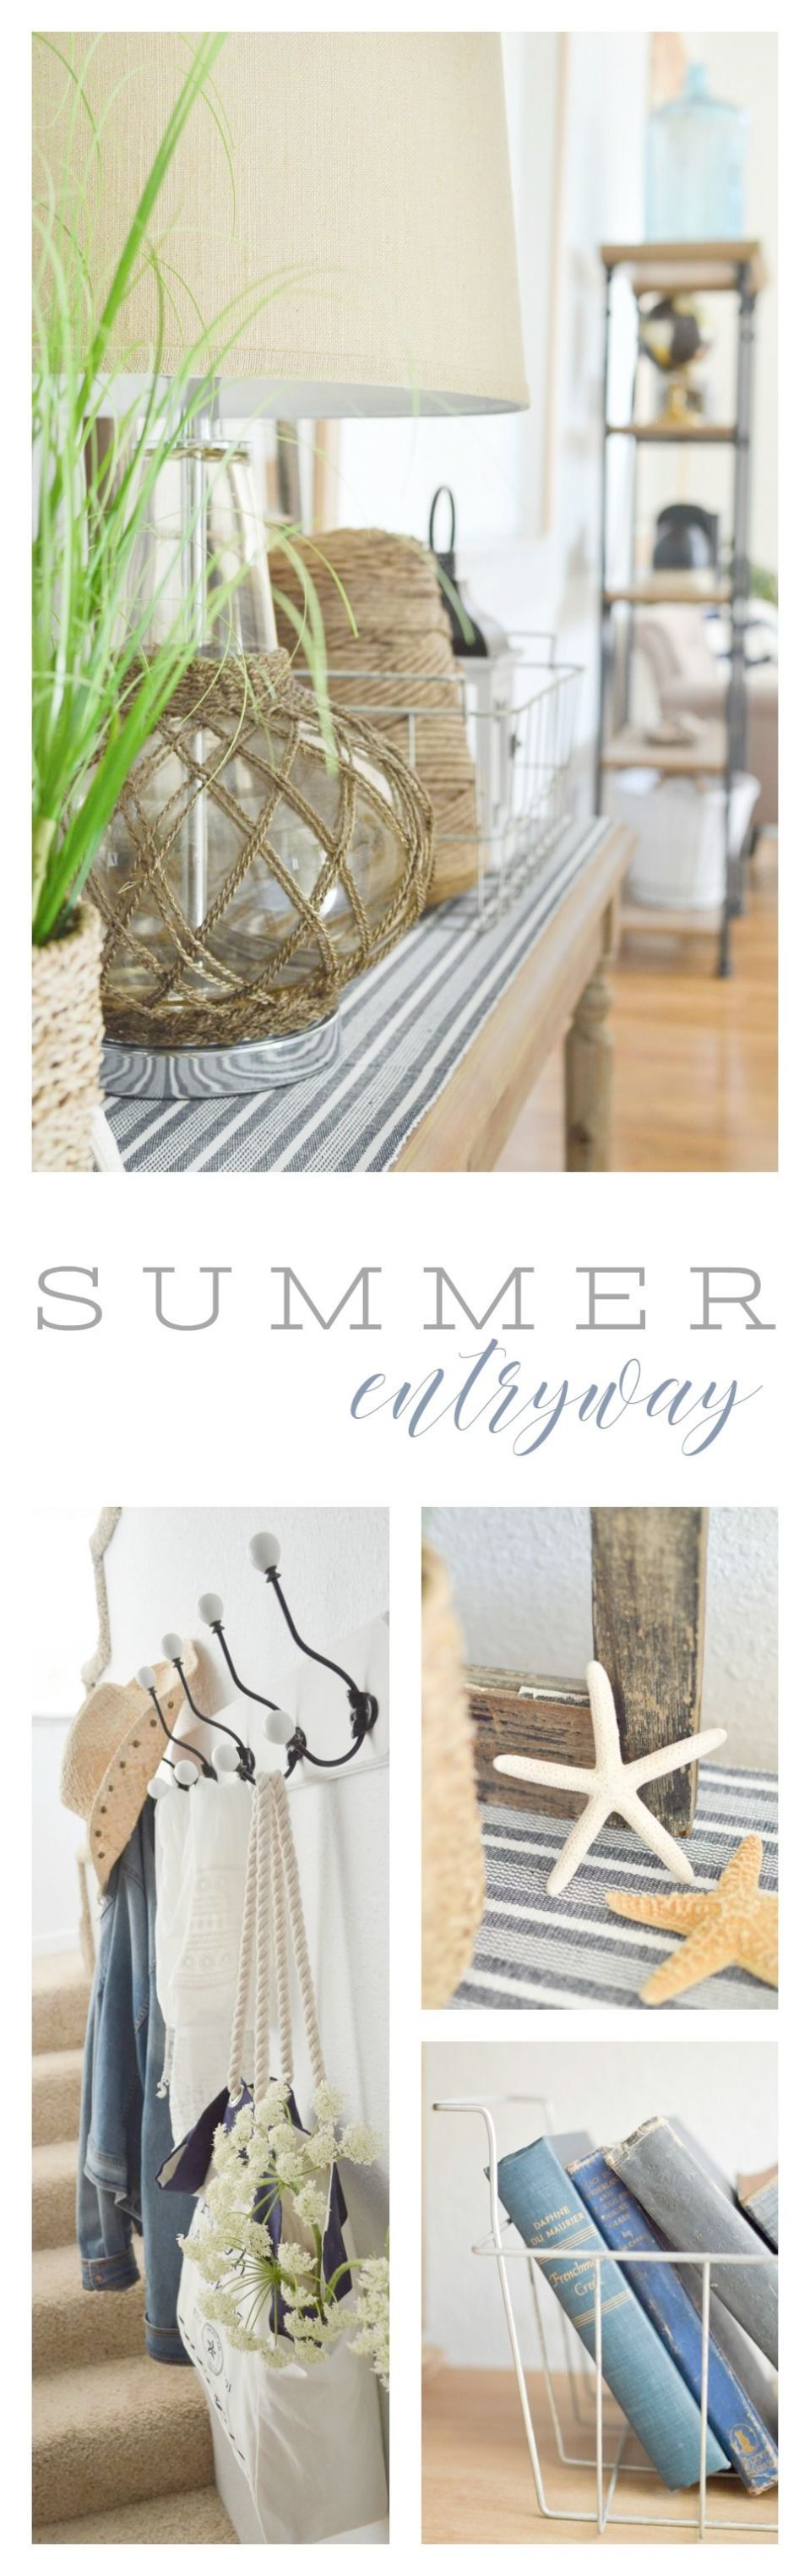 Summer Entryway Home Decorating Ideas Our Entry Is Full Of